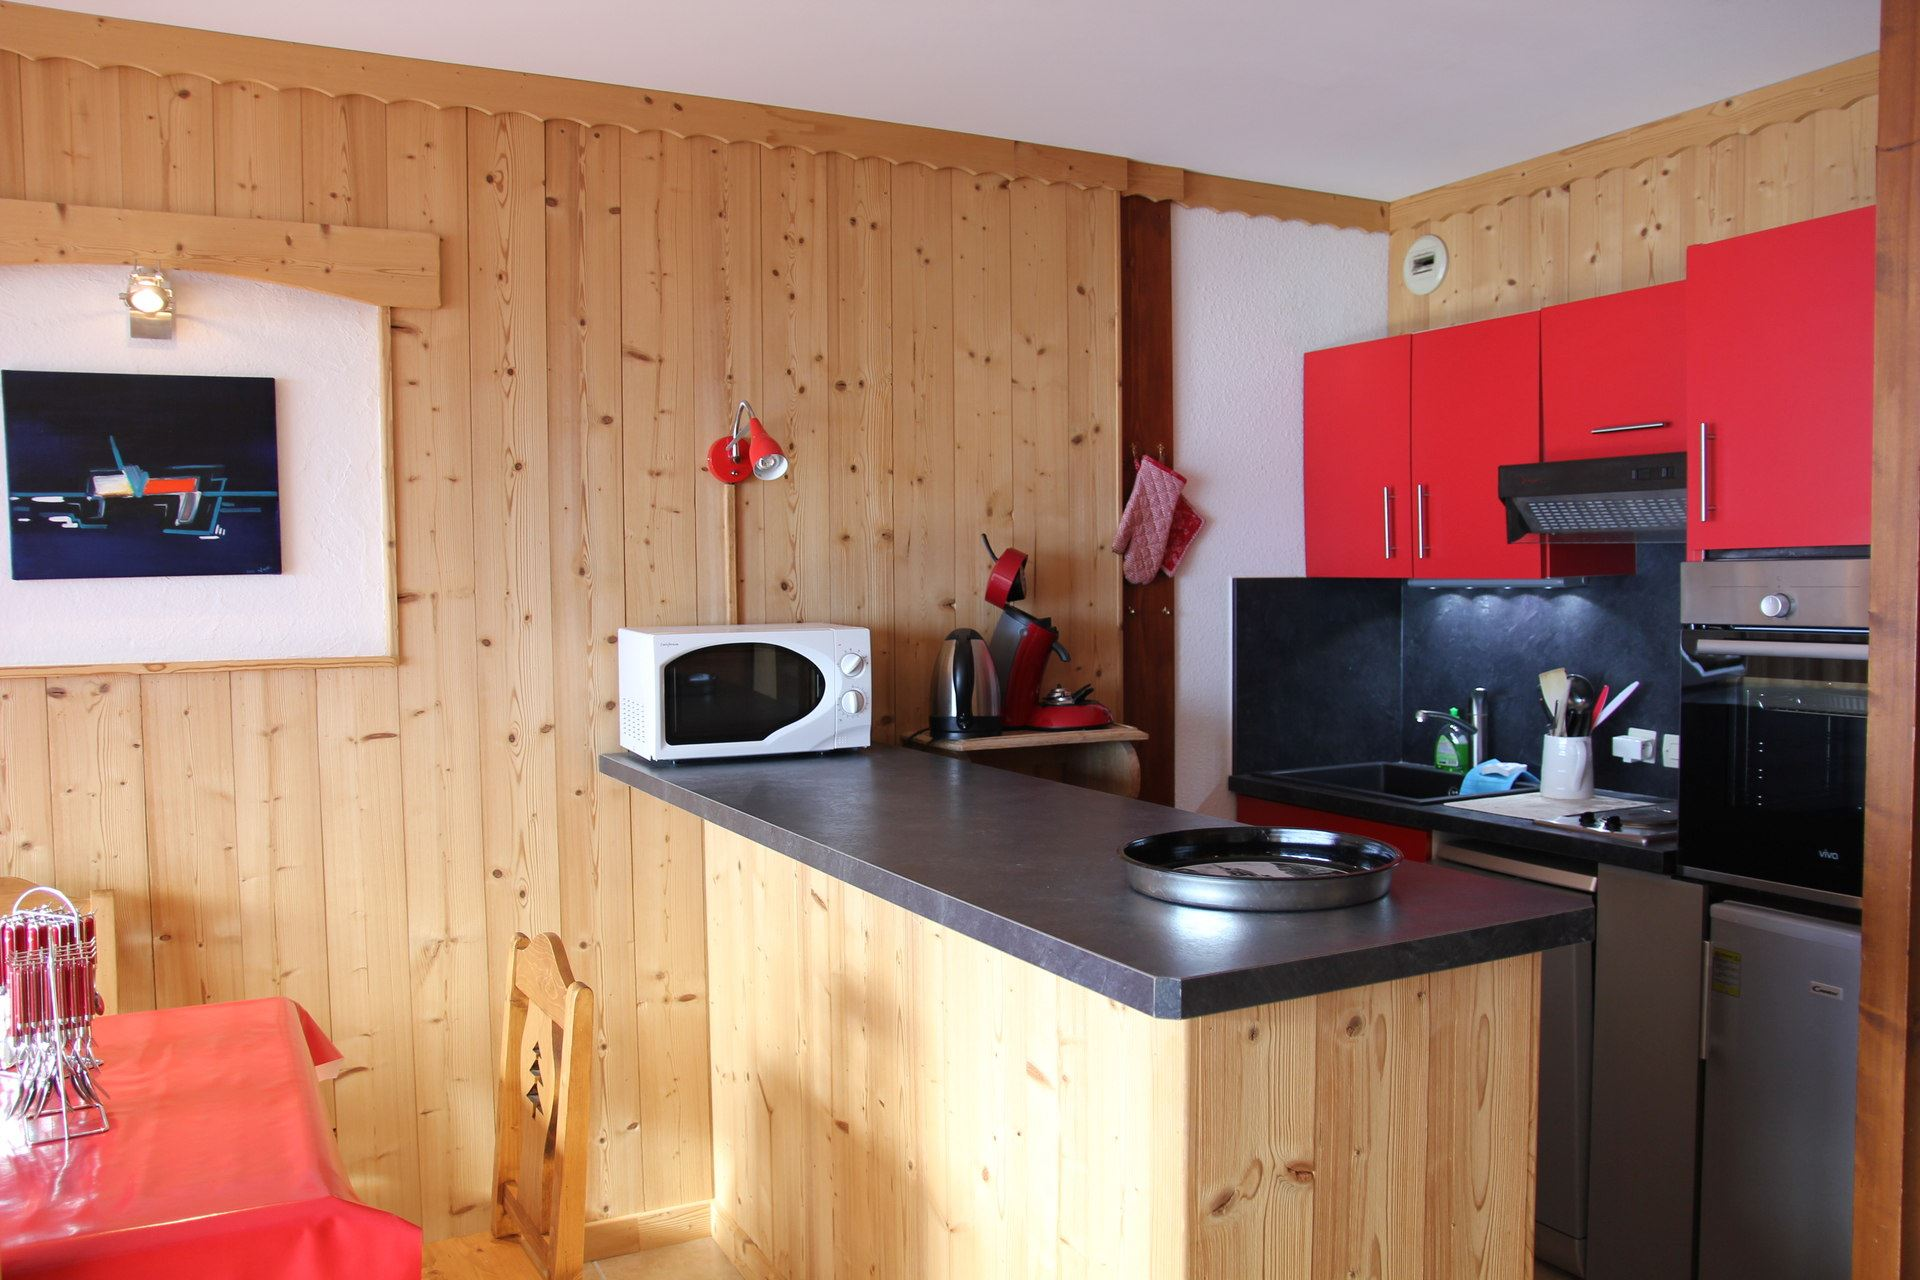 BEAU SOLEIL 2 / APPARTEMENT 2 PIECES CABINE 6 PERSONNES - 2 FLOCONS OR - CI